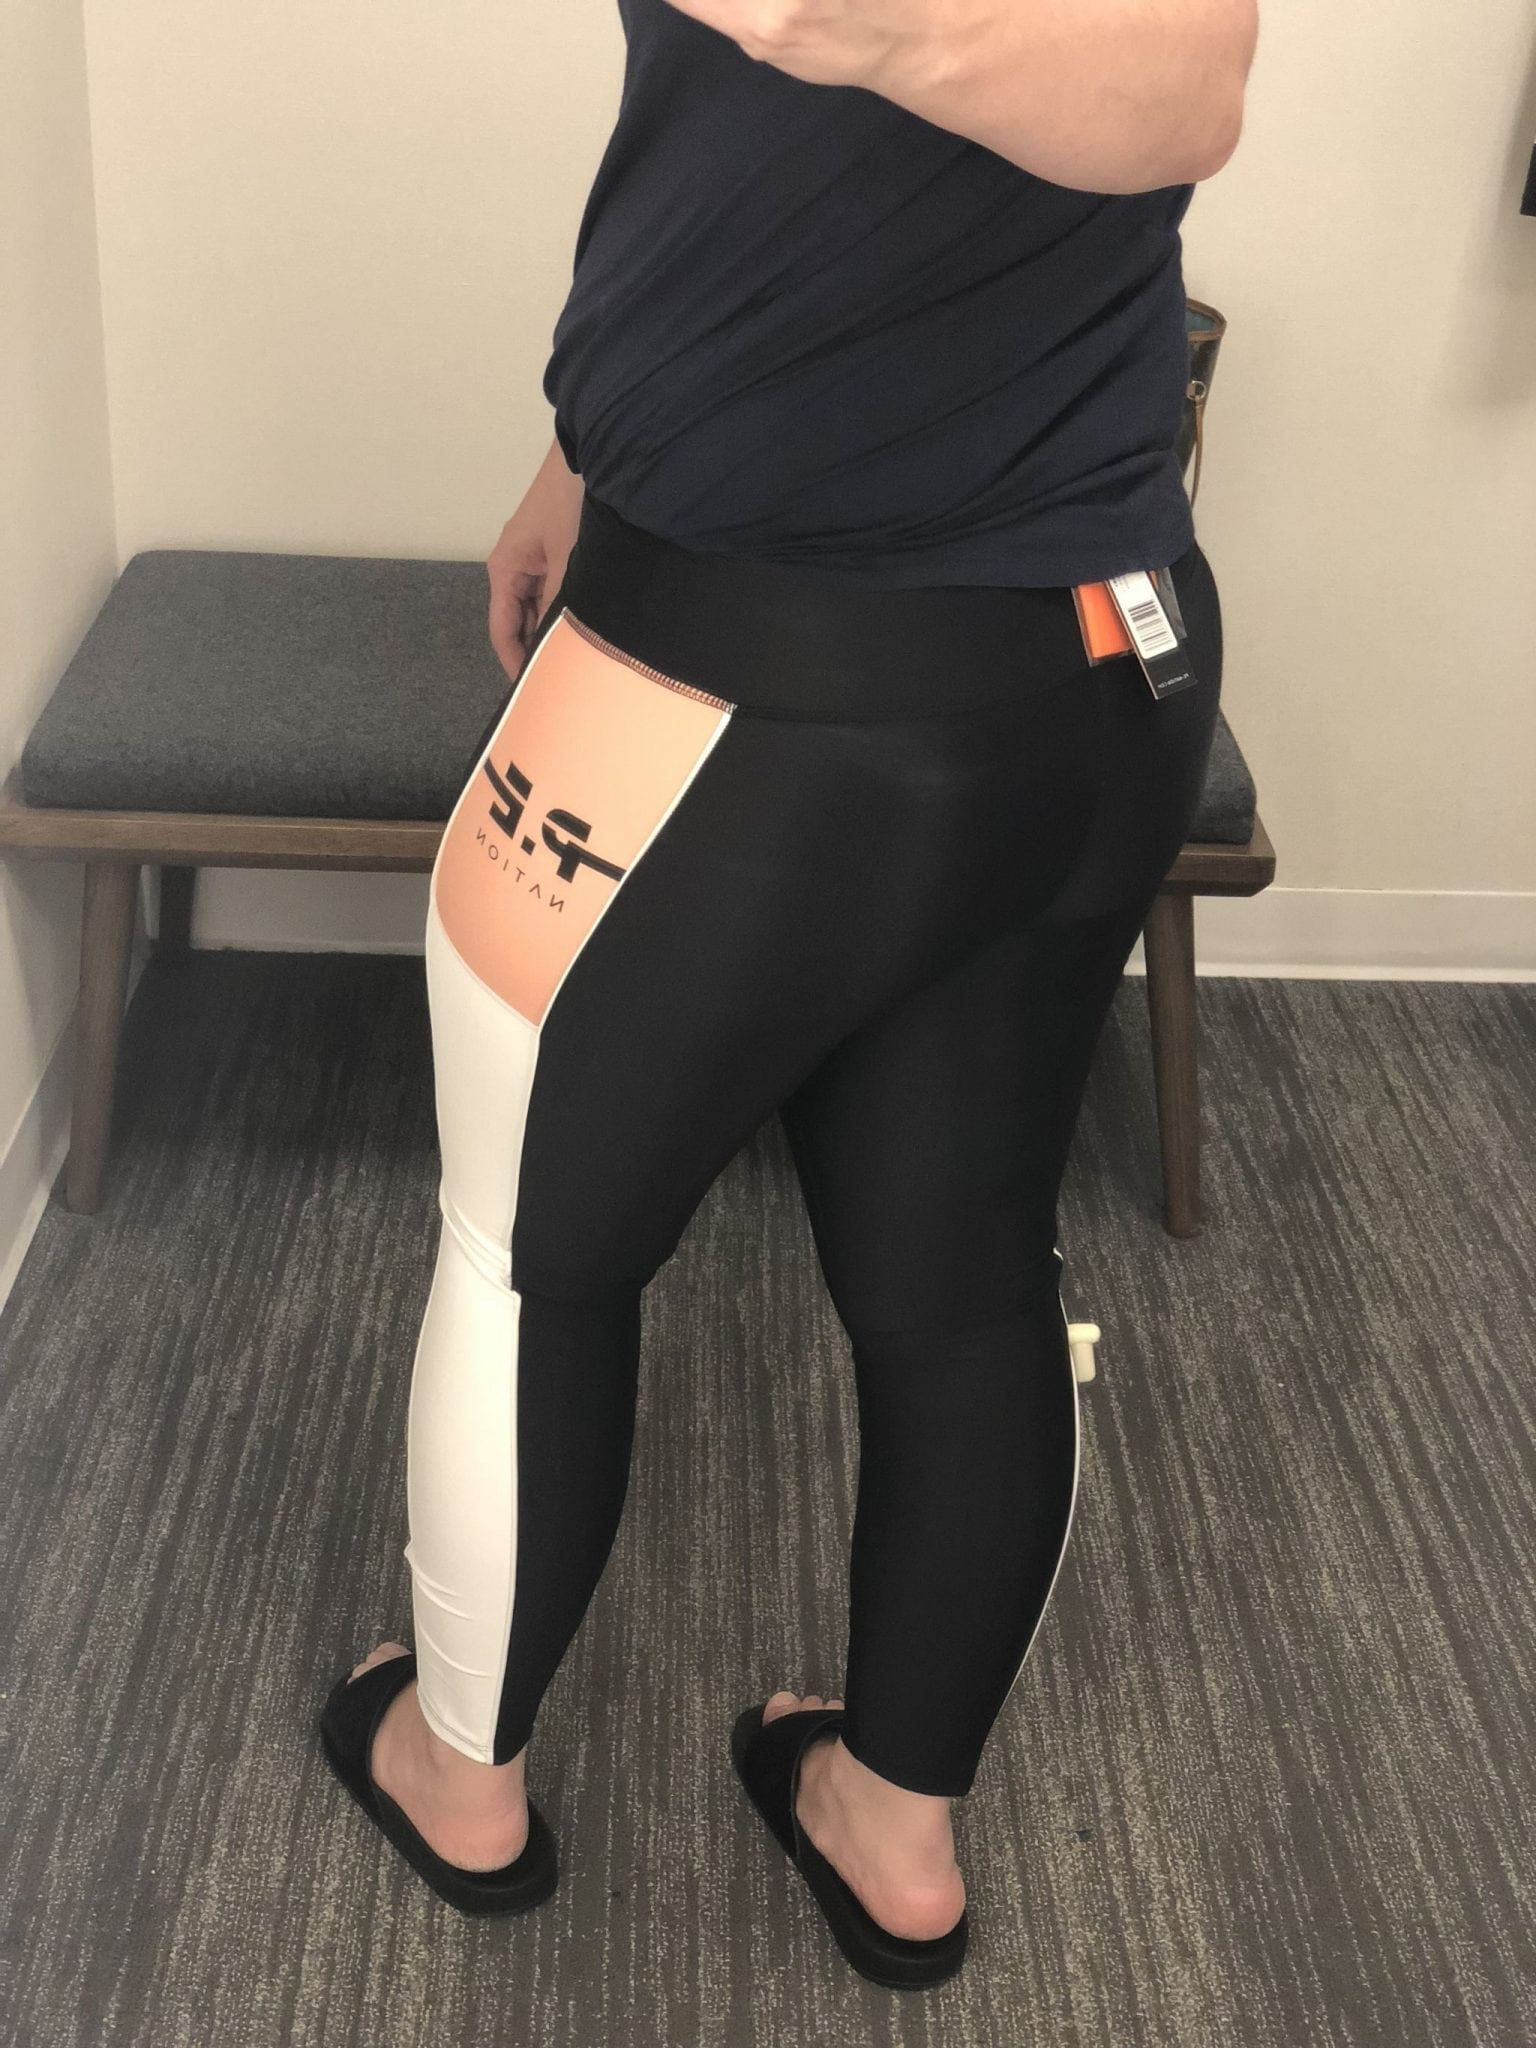 P.E Nation Without Limits Leggings